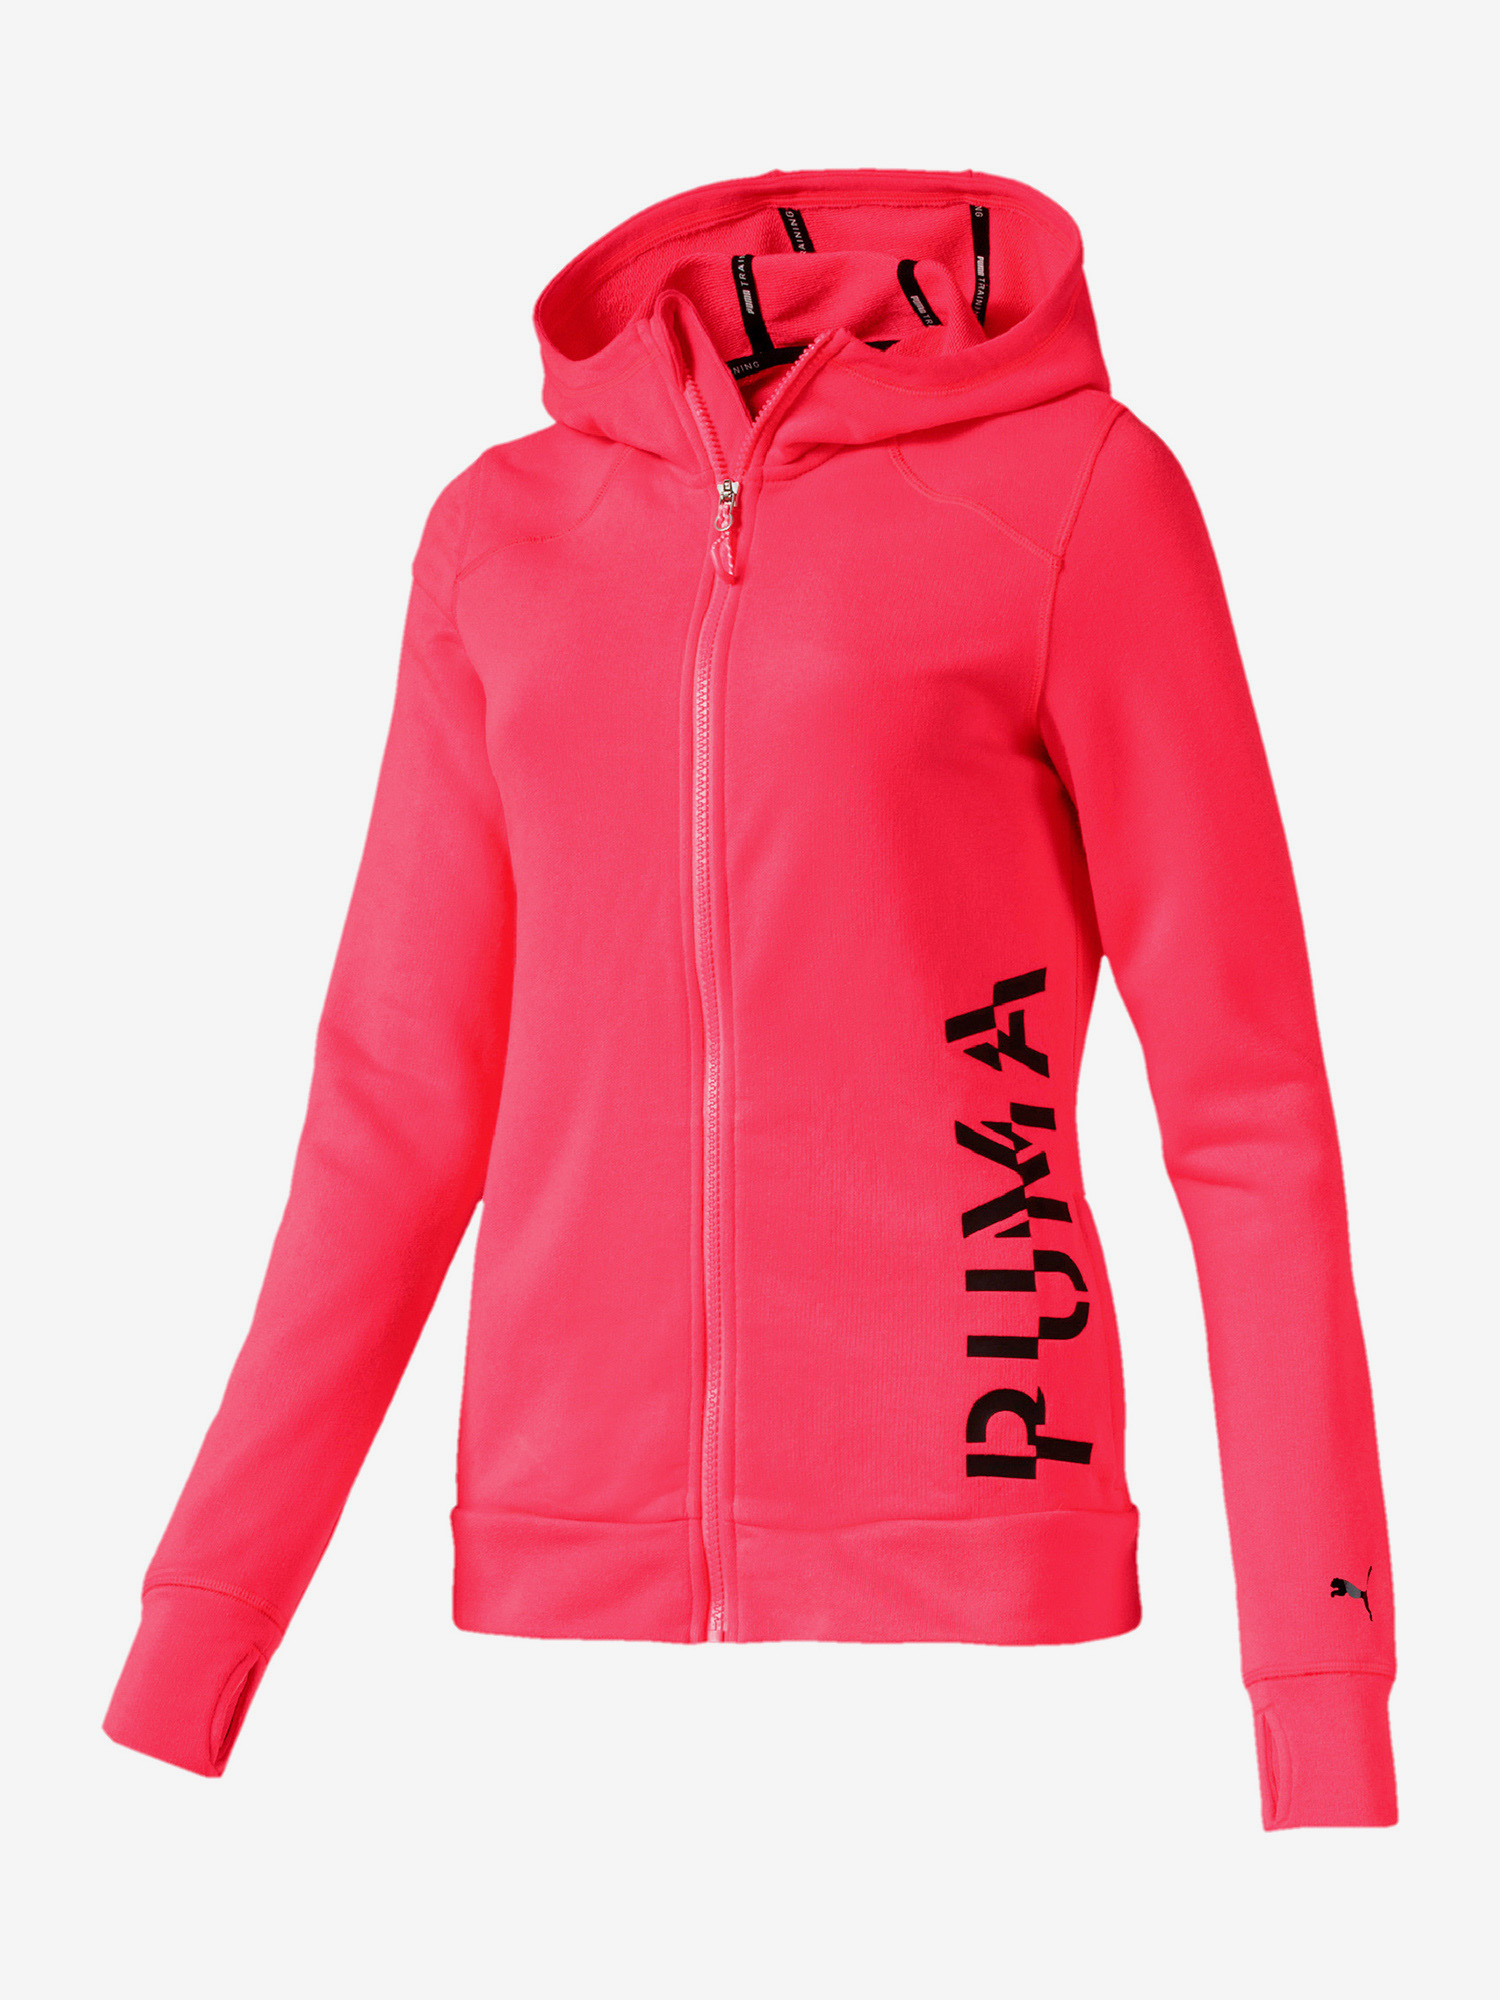 Bunda Puma Logo Sweat Jacket Růžová